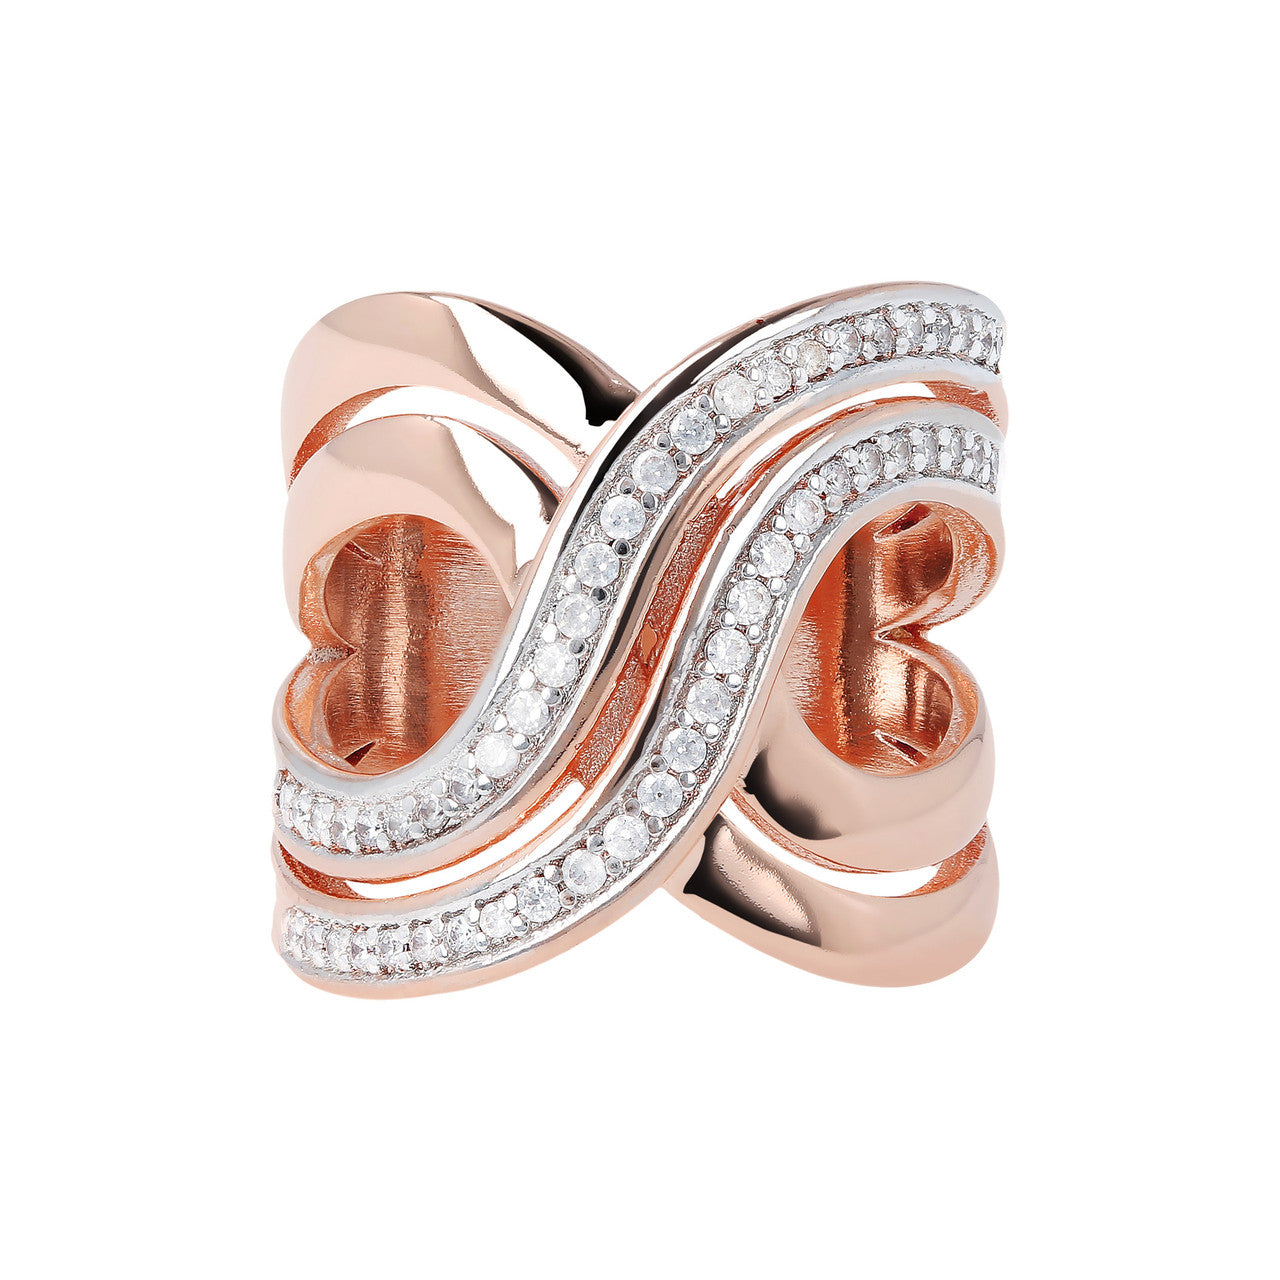 sis greek hands lil designs infinity product a ring infiniti rings little ocean list big